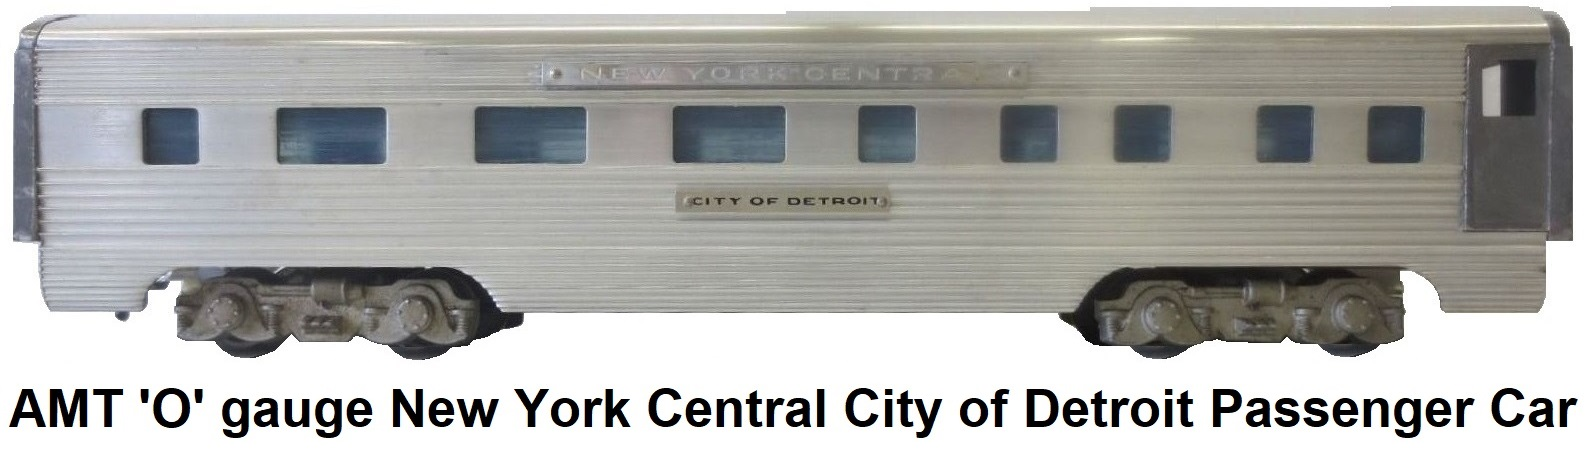 AMT American Model Toys New York Central City of Detroit Pullman in 'O' gauge